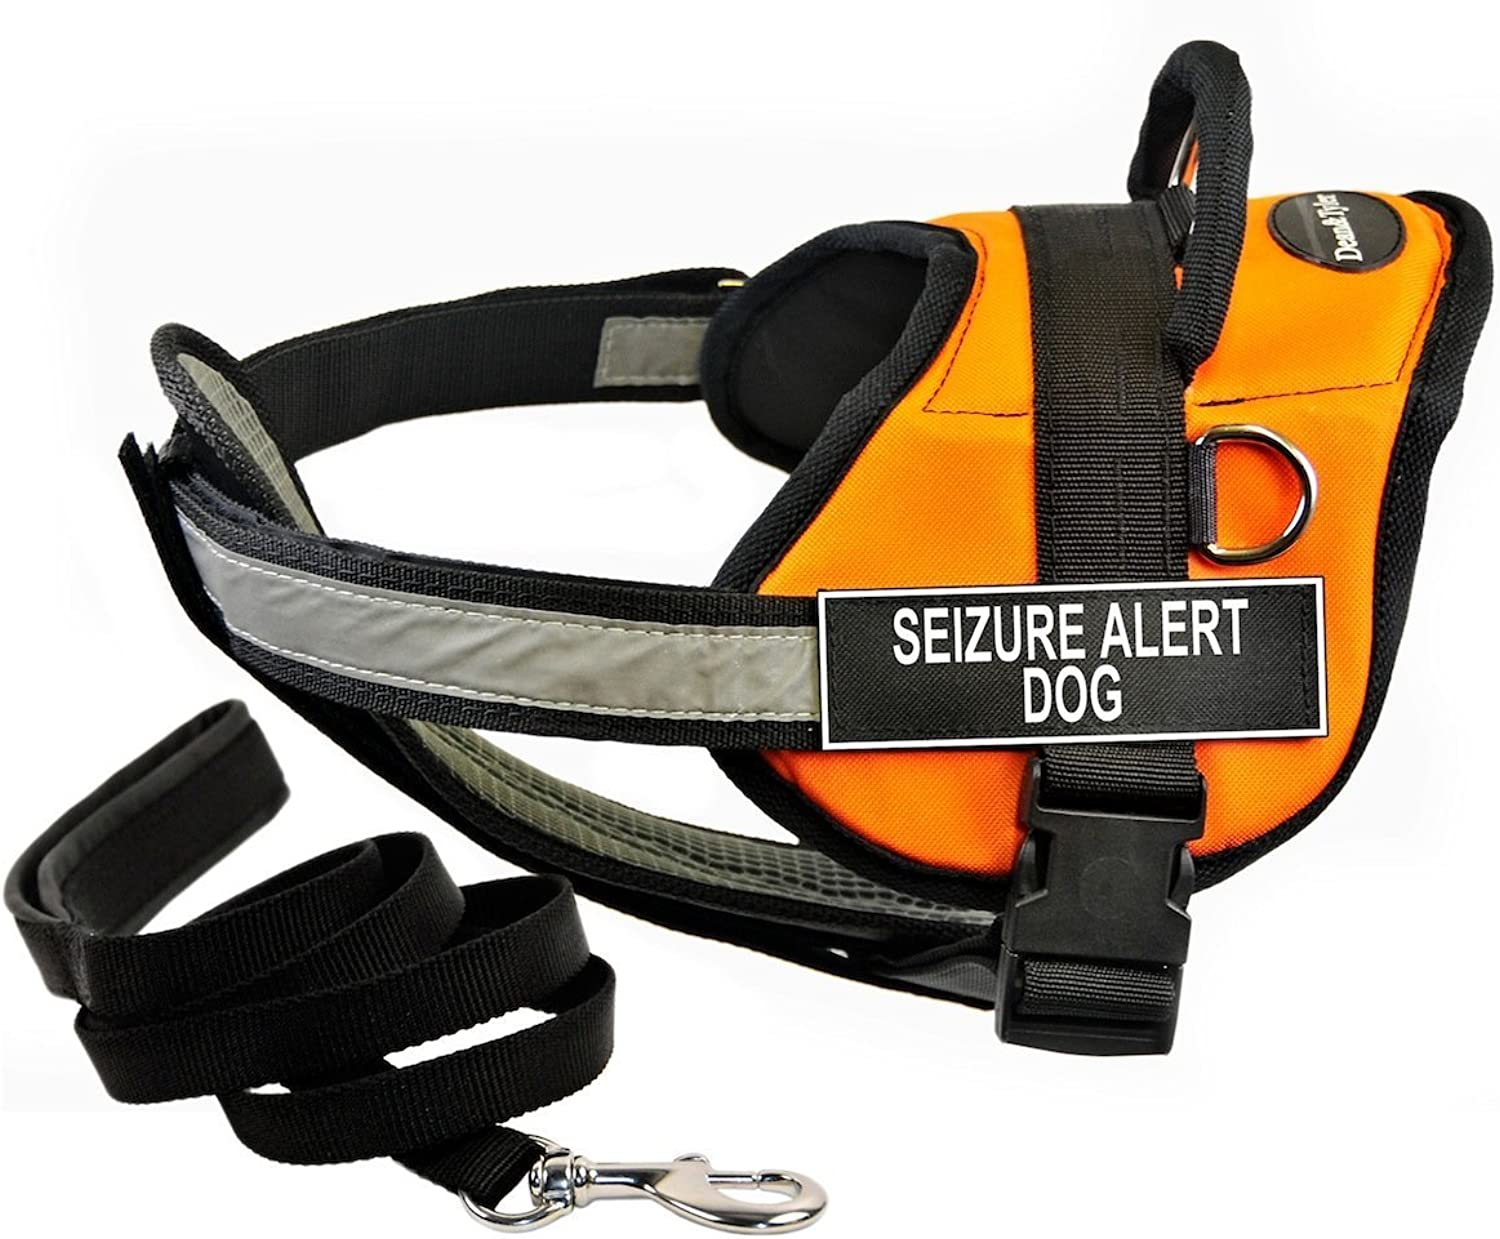 Dean & Tyler DT Works orange SEIZURE ALERT DOG Harness with Chest Padding, Small, and Black 6 ft Padded Puppy Leash.